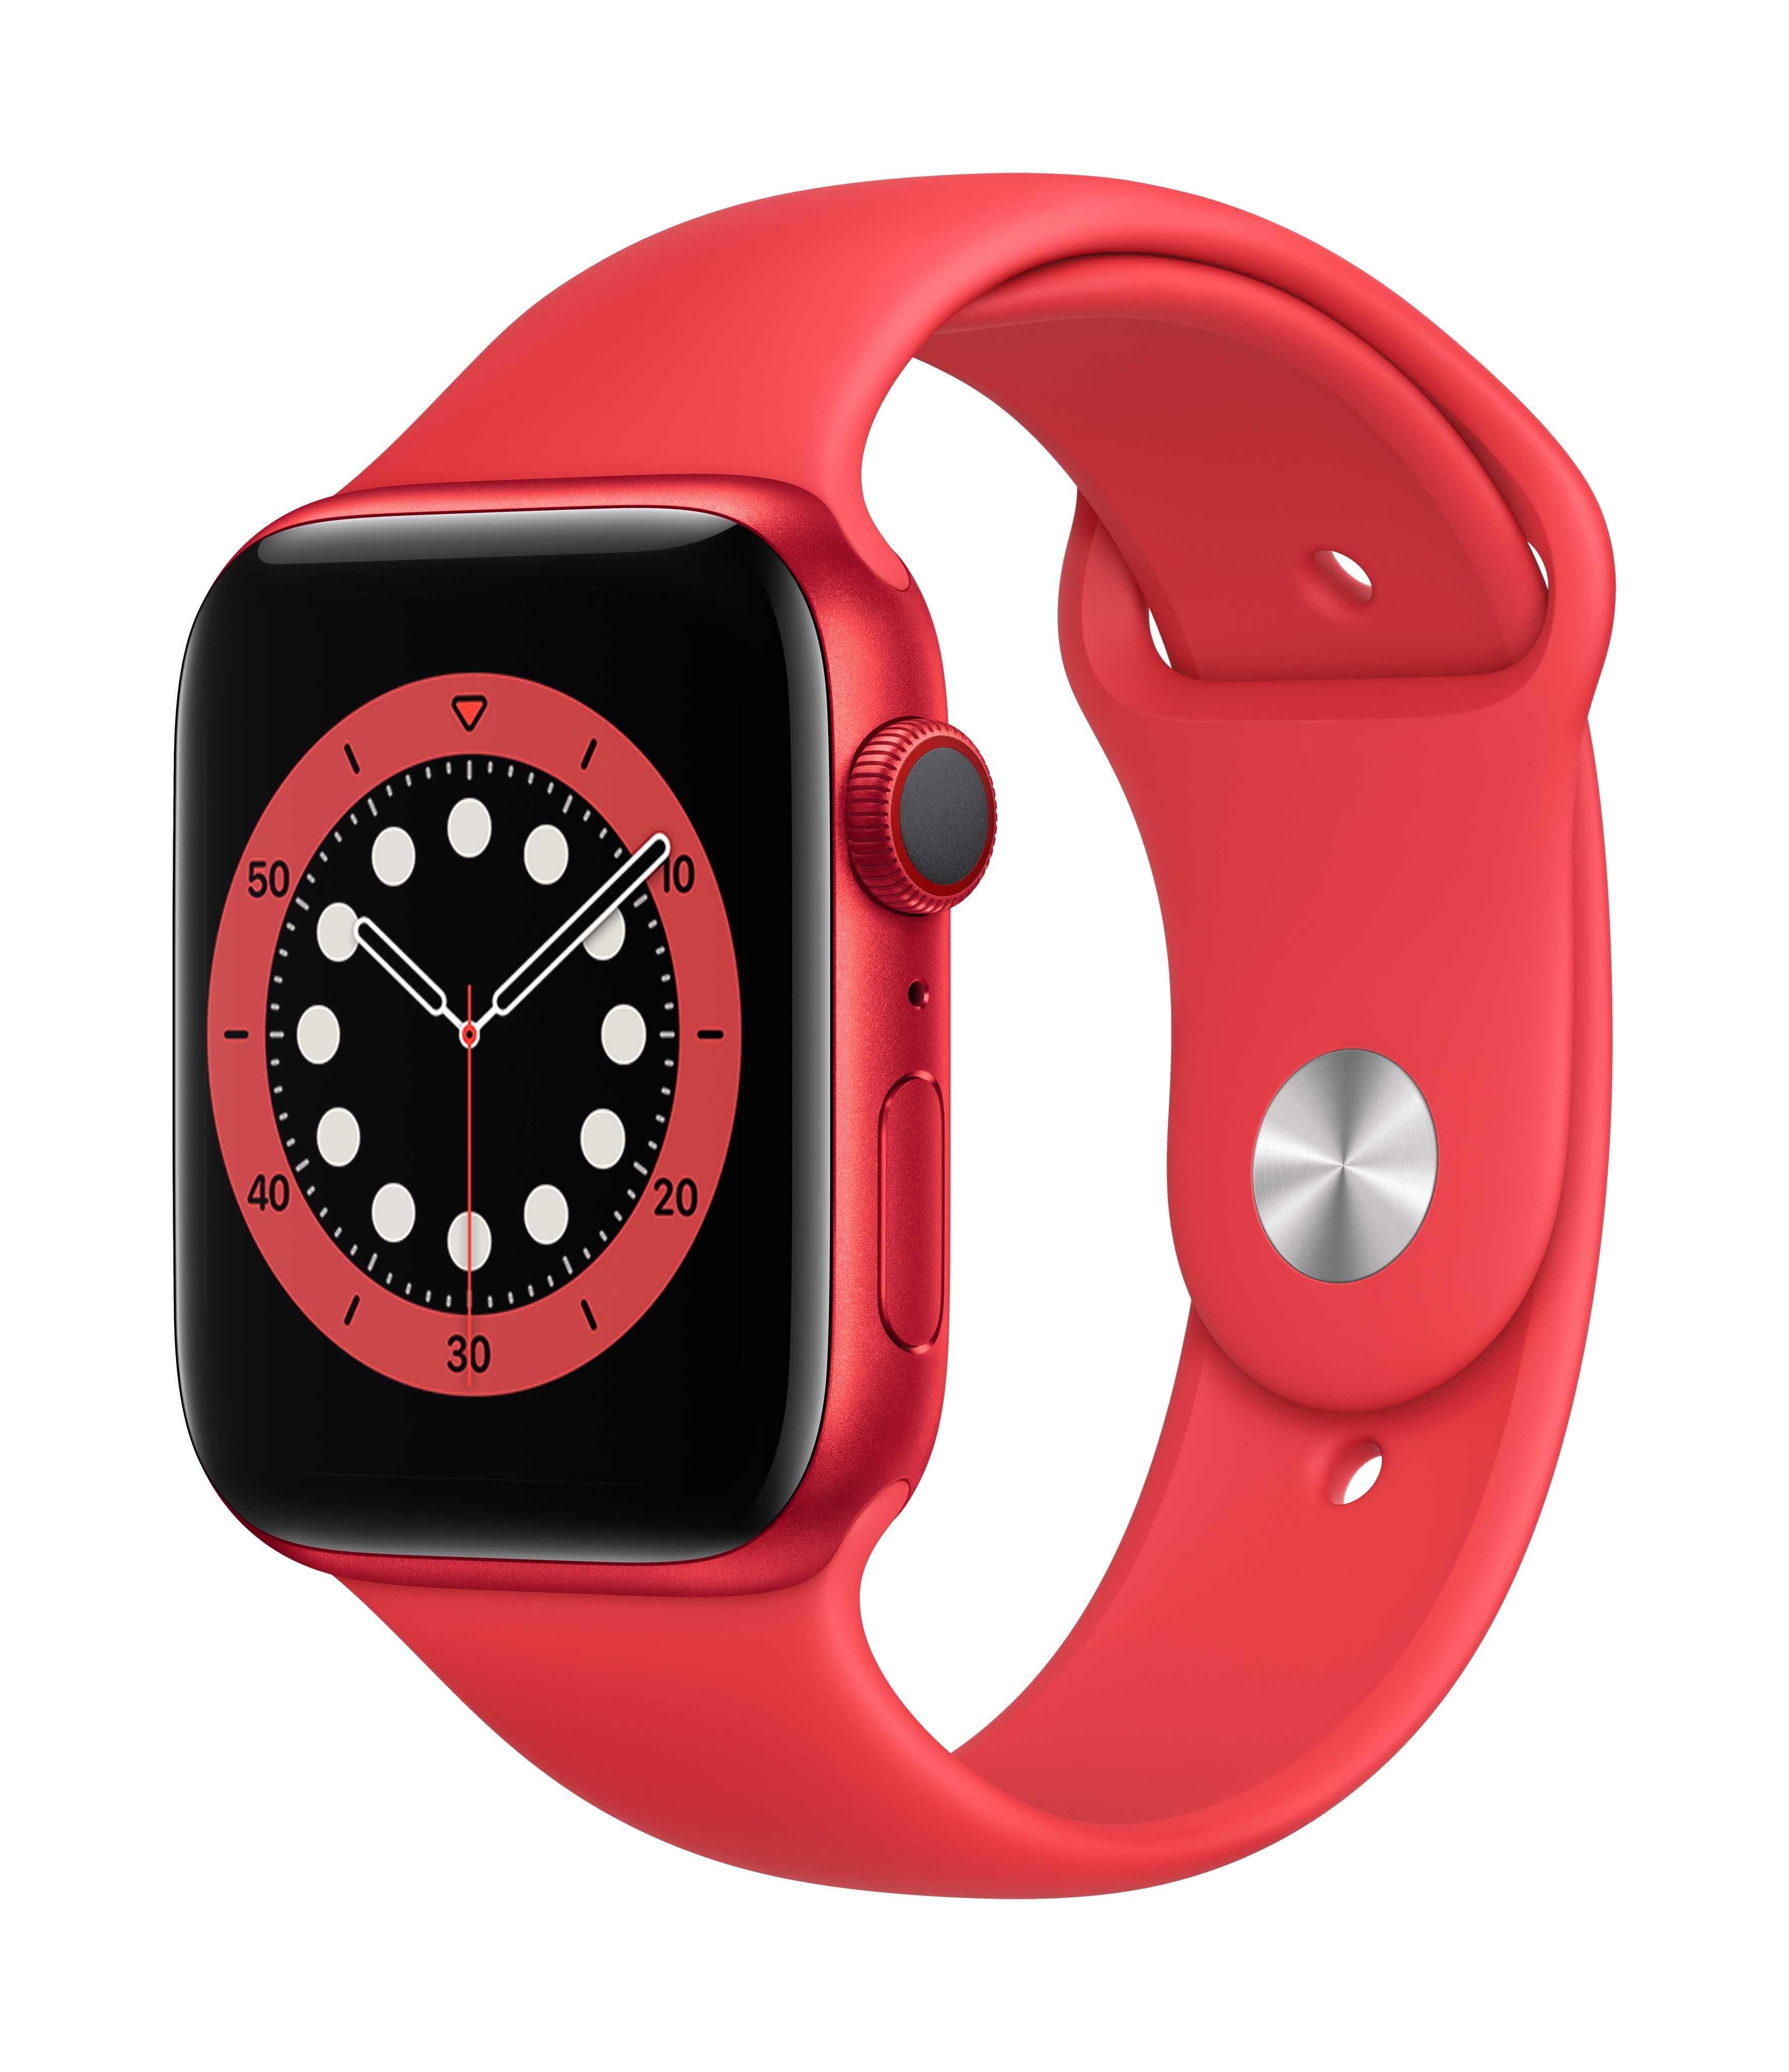 Apple Watch Series 6 GPS + Cellular 44mm PRODUCT(RED) Aluminum w/ PRODUCT(RED) Sport Band at Small Dog Electronics